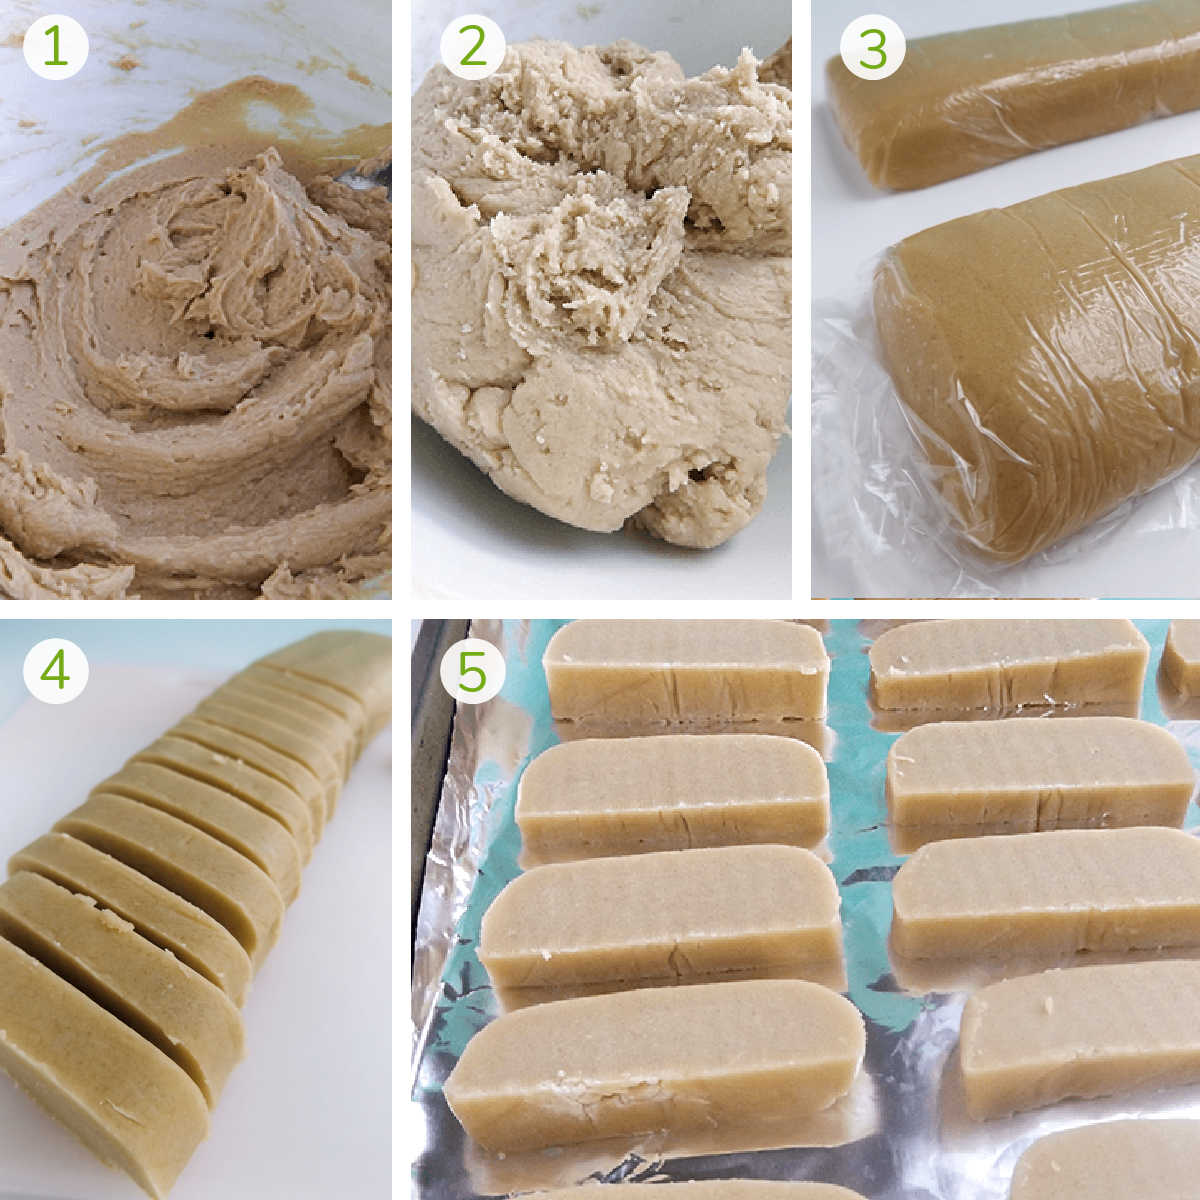 several process photos showing making the dough, forming it into a loaf, slicing and freezing it.